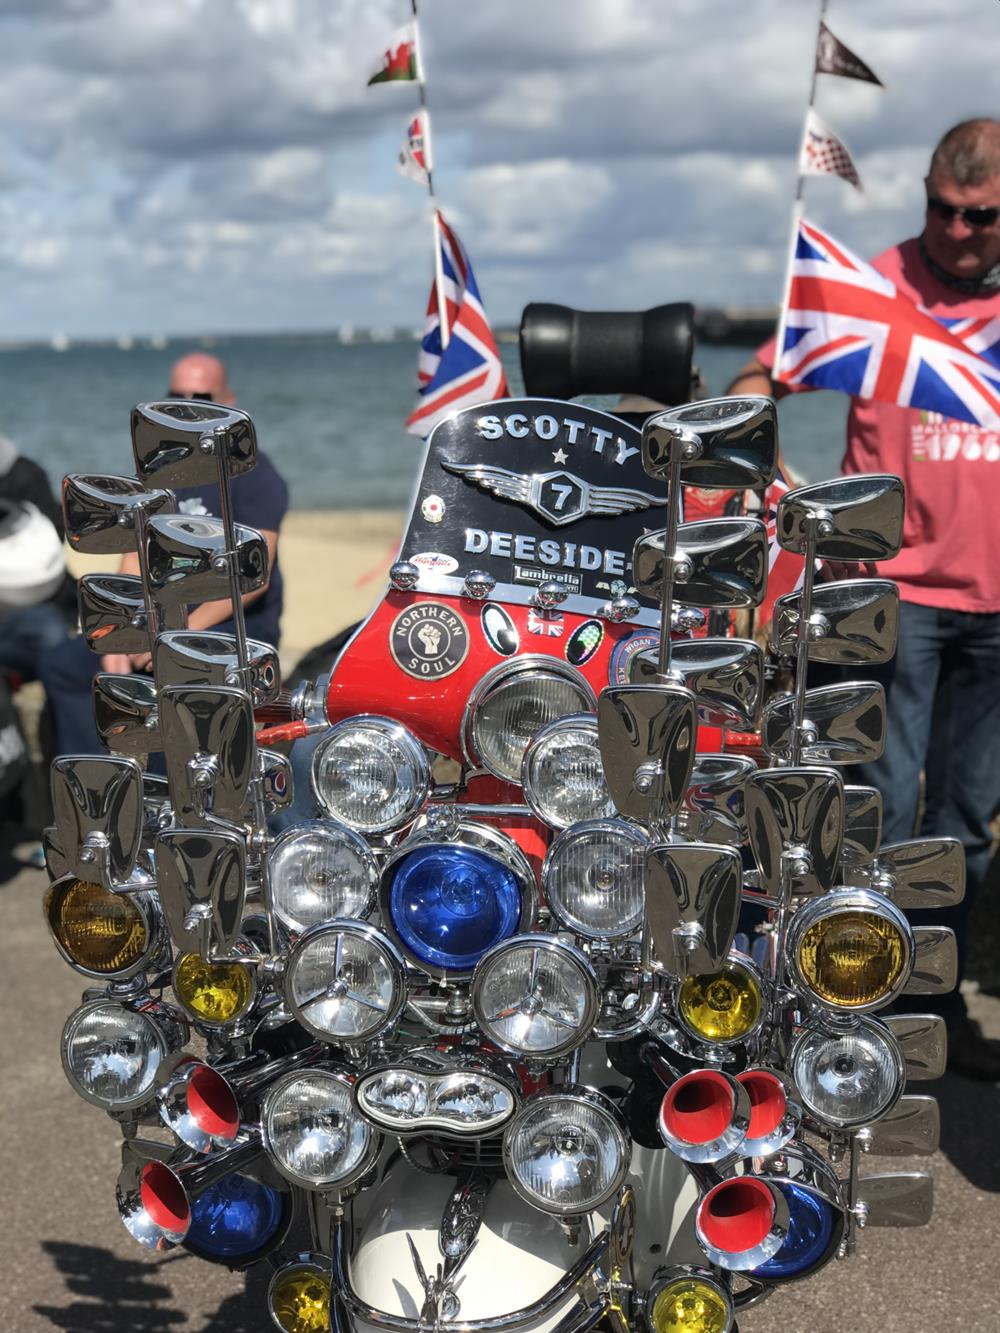 Mod scooter at the Isle of Wight scooter rally